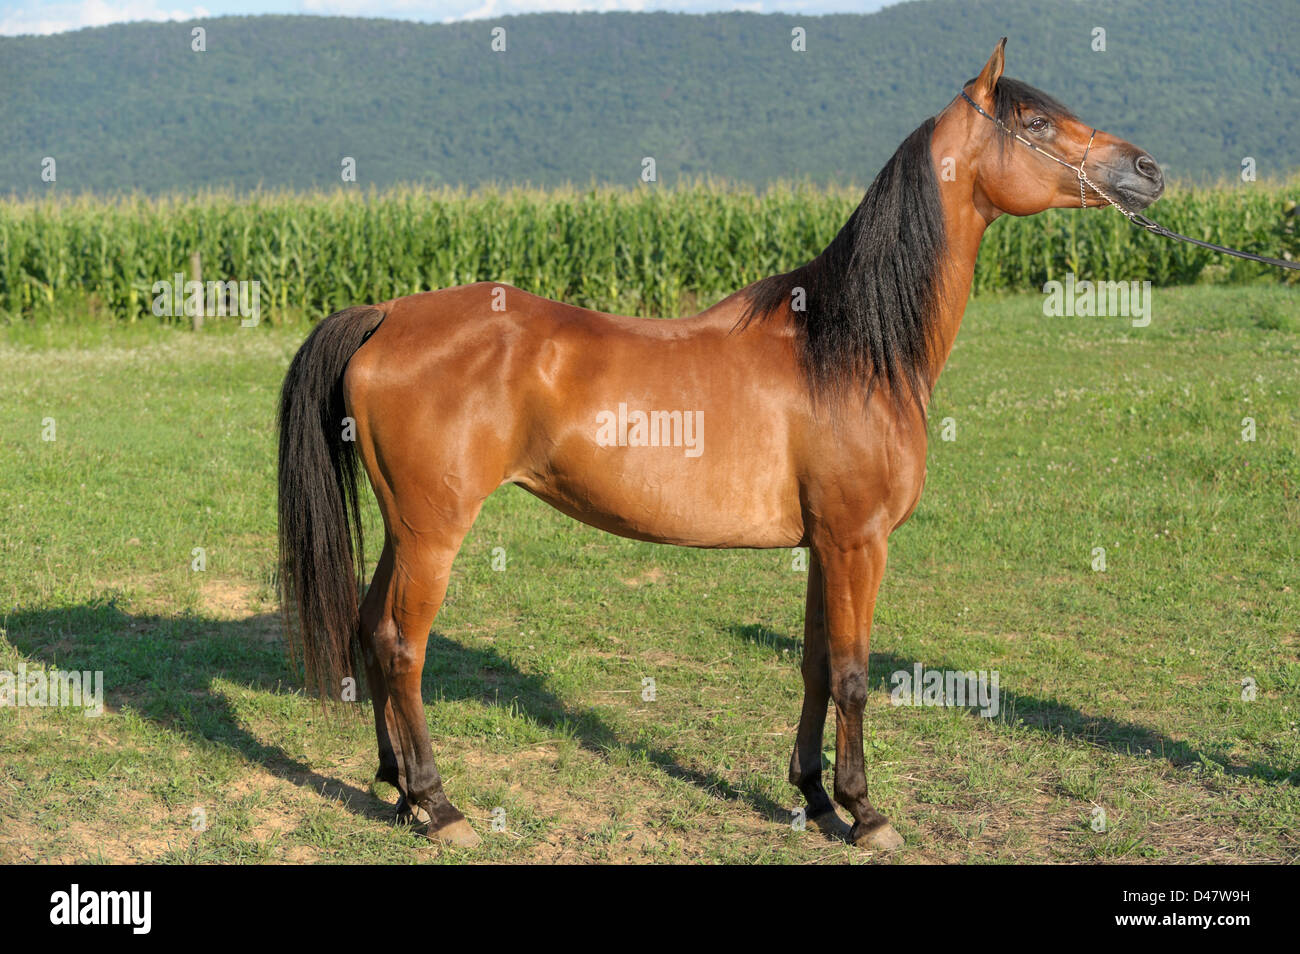 Bay horse standing in full body, side view, profile of a ...